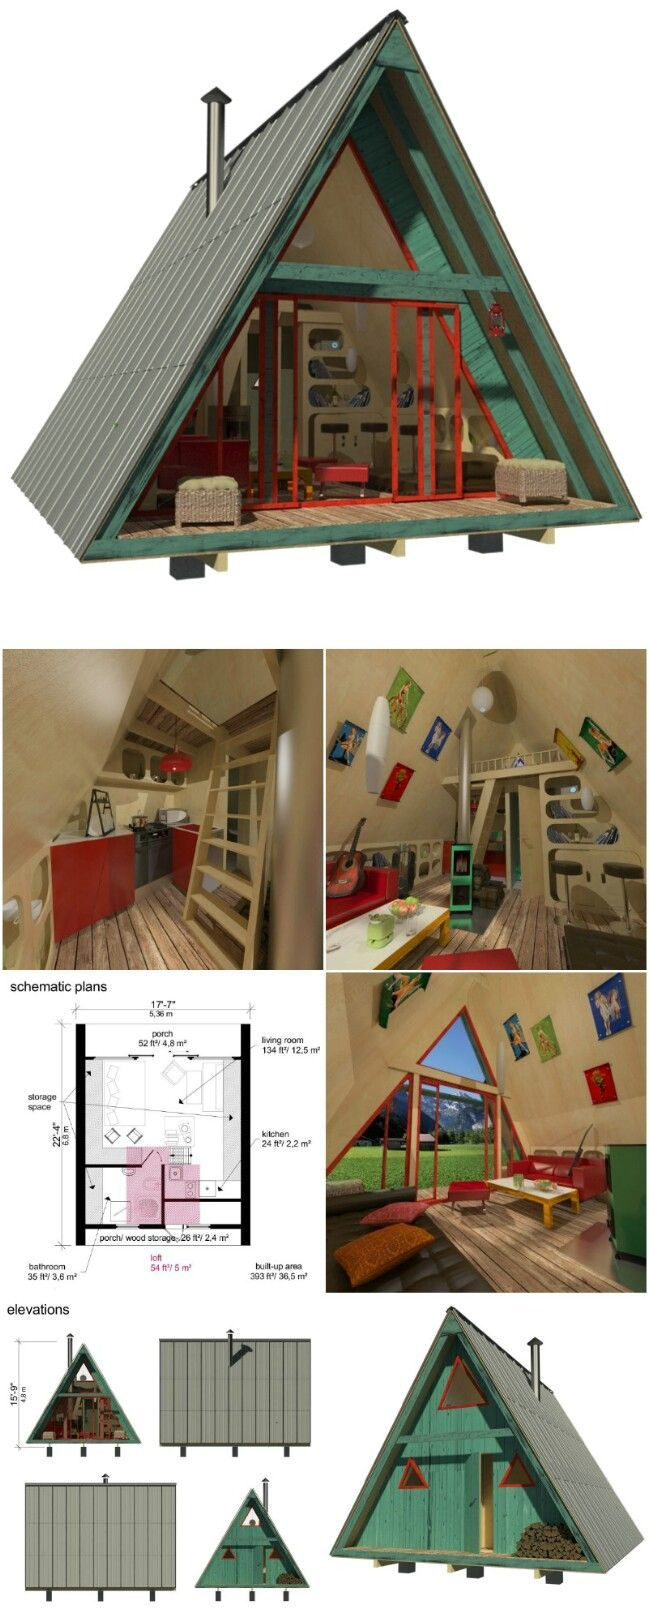 House design build your own - 25 Plans To Build Your Own Fully Customized Tiny House On A Budget Tiny Houses